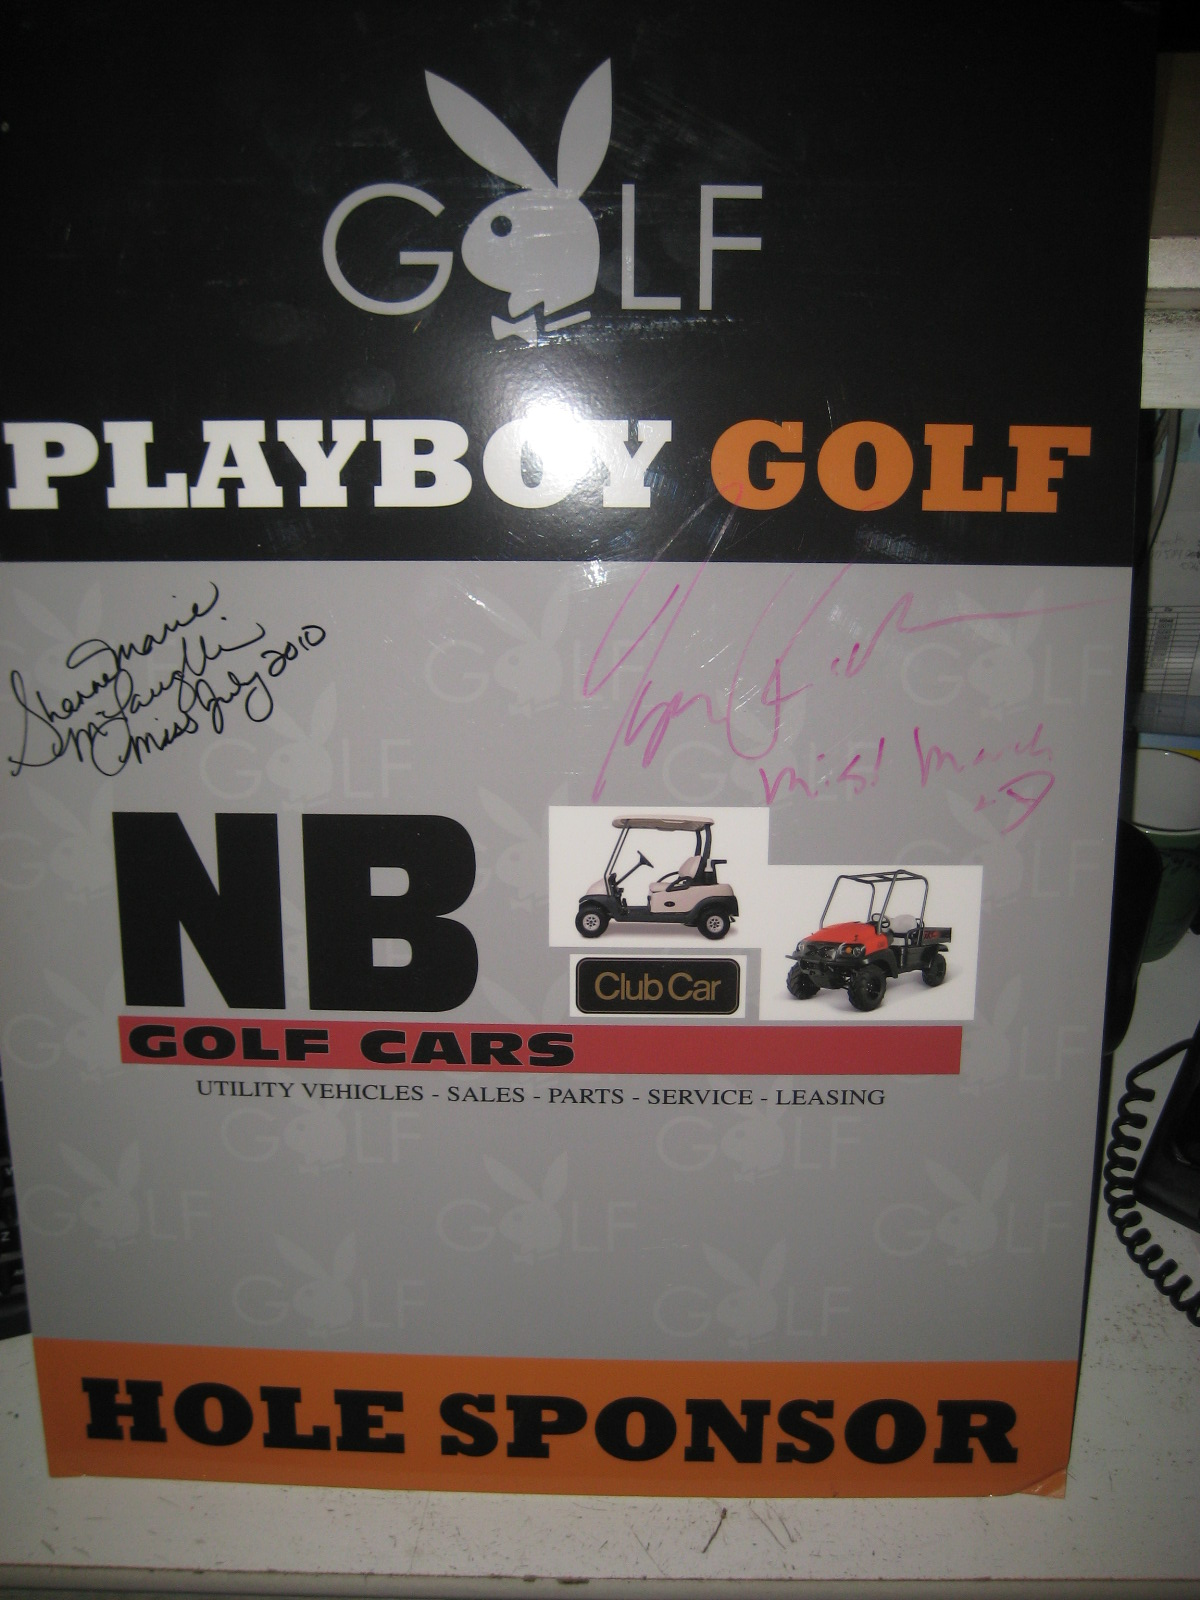 Playboy Golf Tournament Hole Sponsor